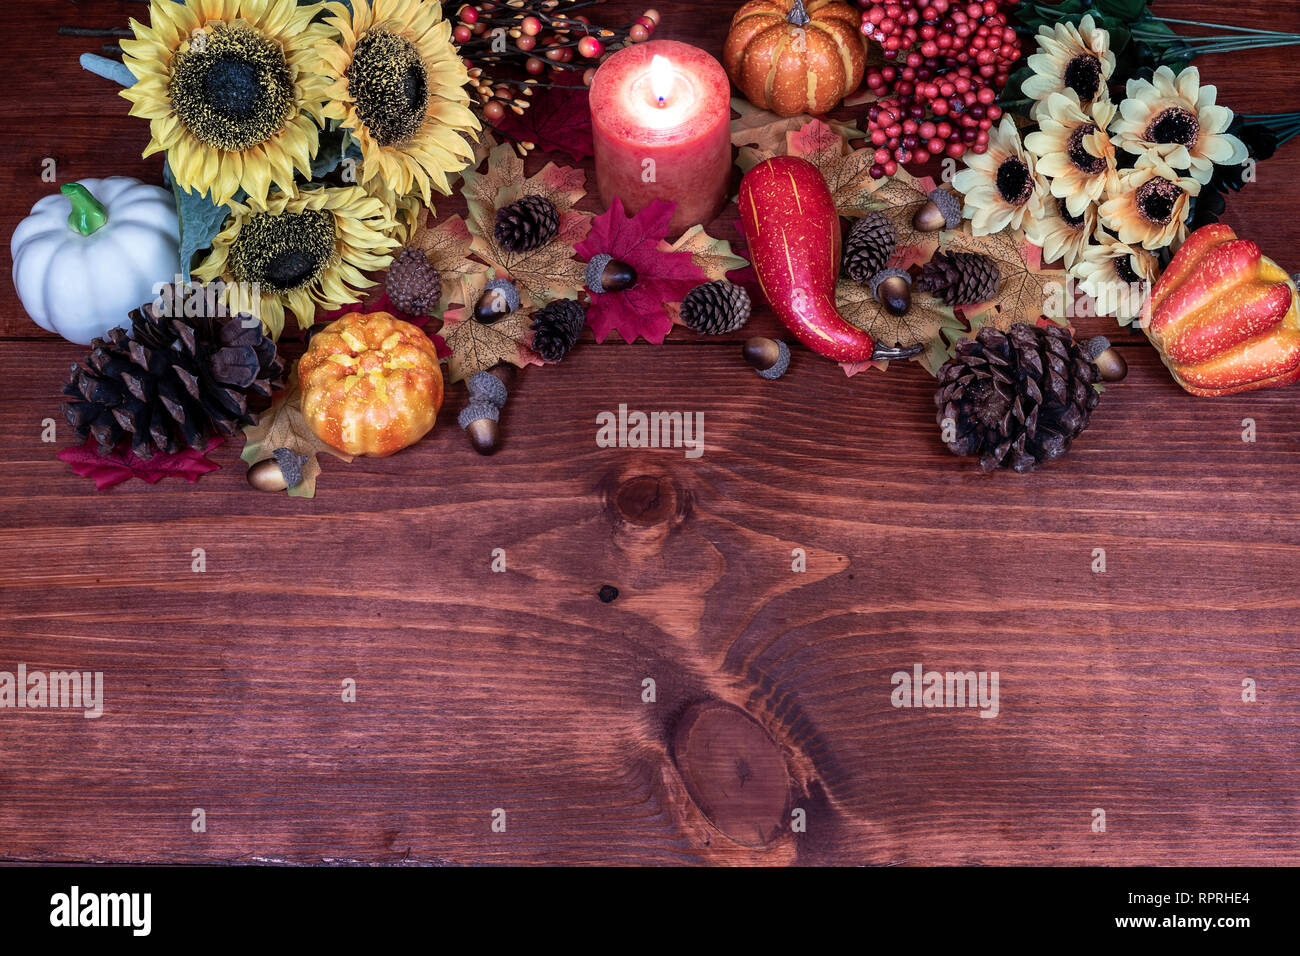 Thanksgiving decor with candle, pine cones, sunflowers, acorns, pumpkins, squash, guard, berries and maple leaves Stock Photo